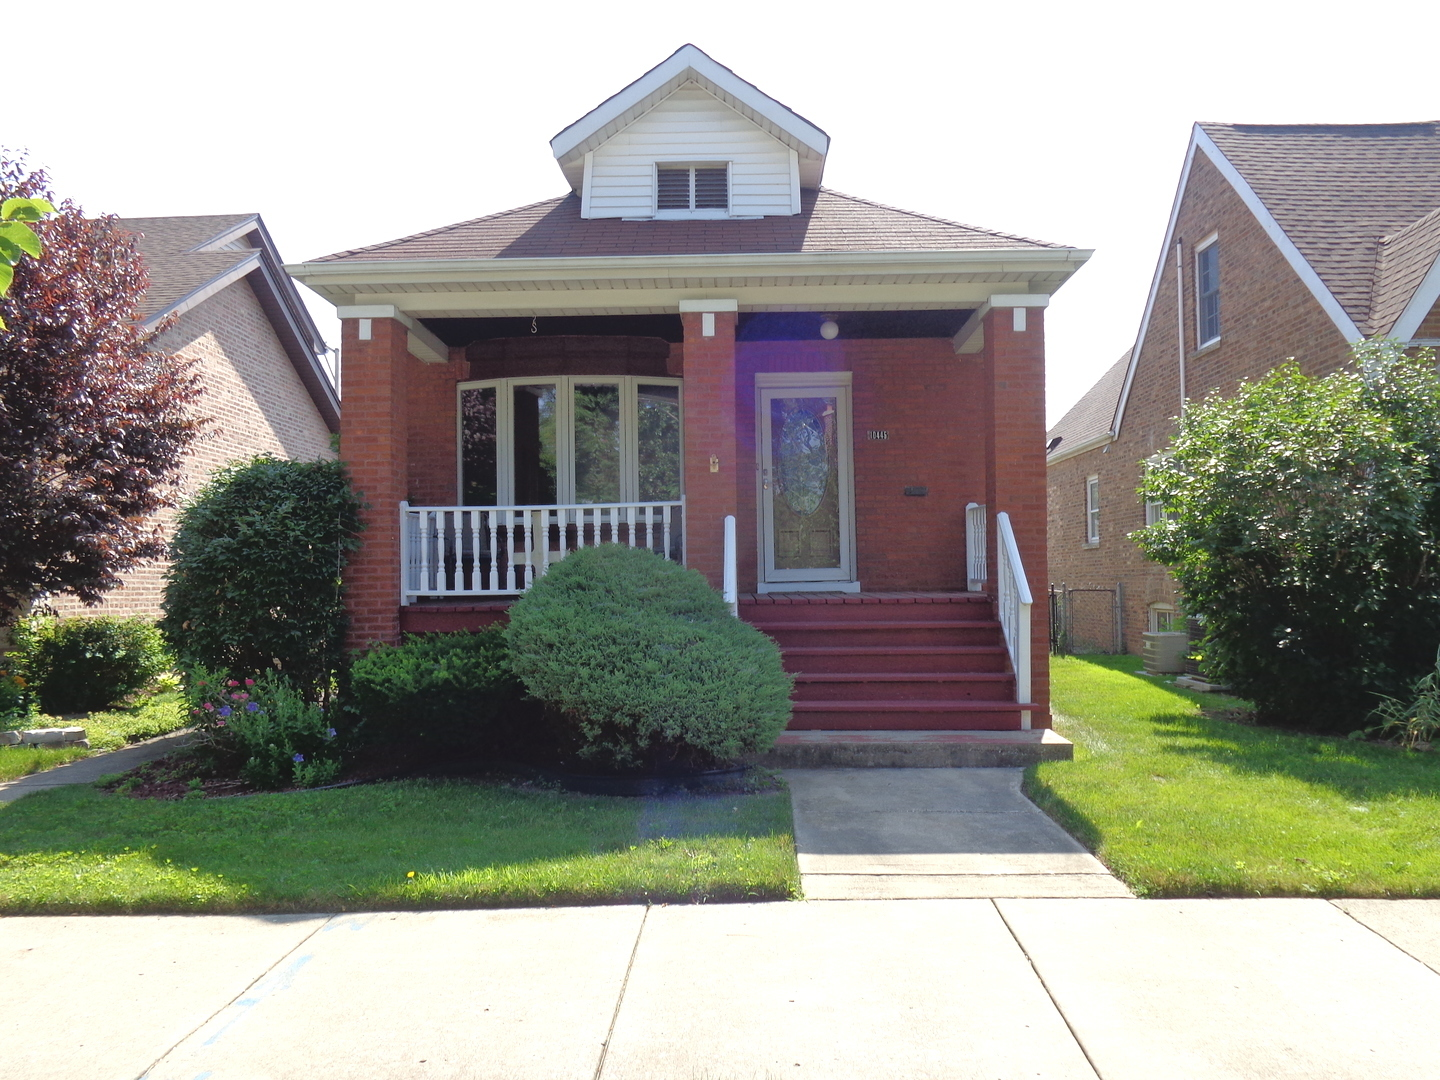 10445 South ARTESIAN Avenue, Beverly-Chicago in Cook County, IL 60655 Home for Sale